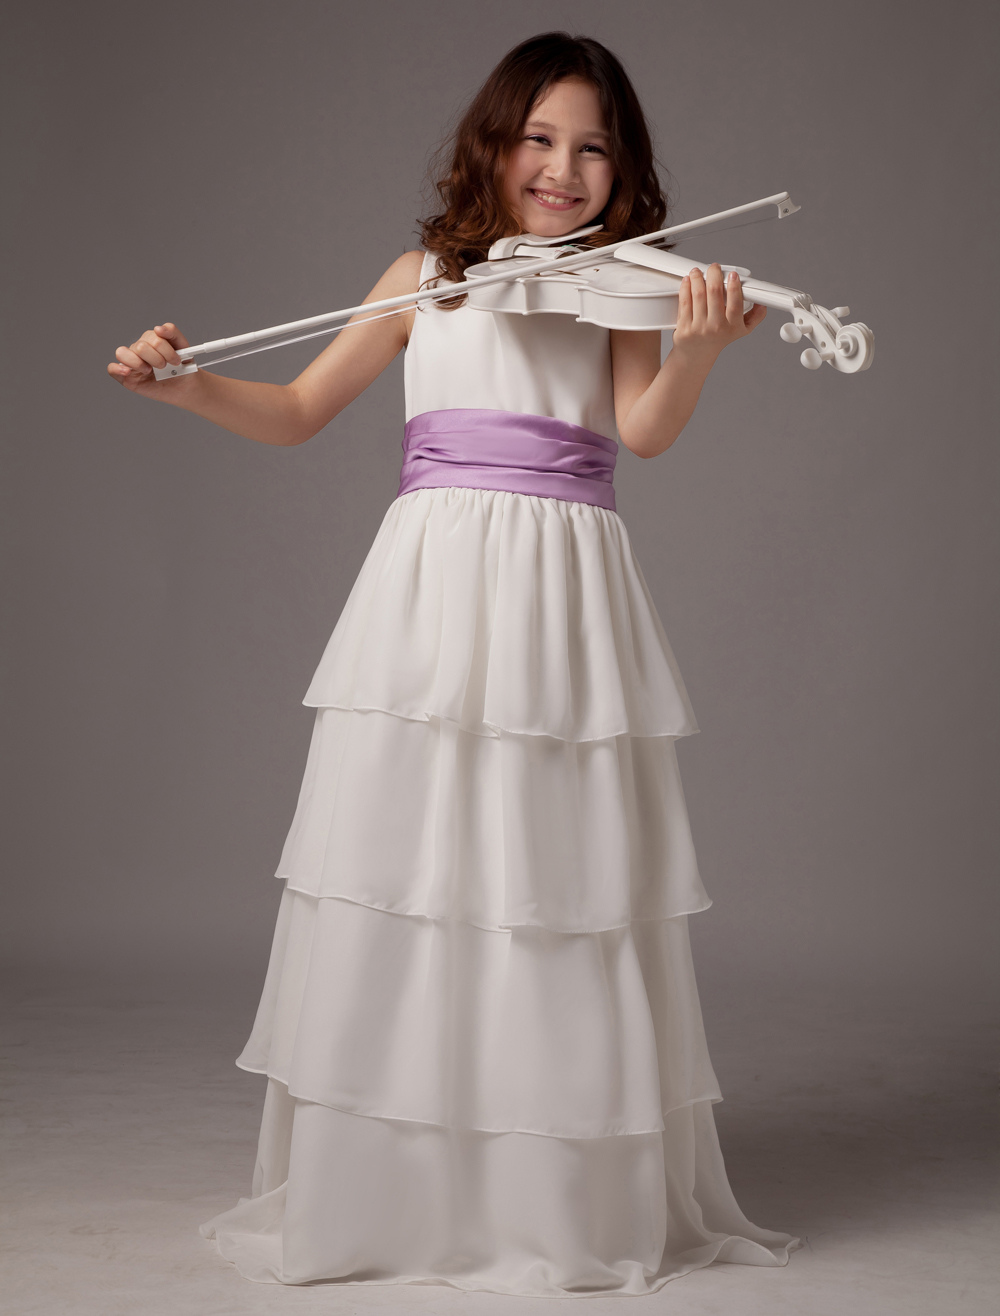 Flower Girl Dress Boho White Tiered Sleeveless Ribbon Sash Kids Maxi Dresses